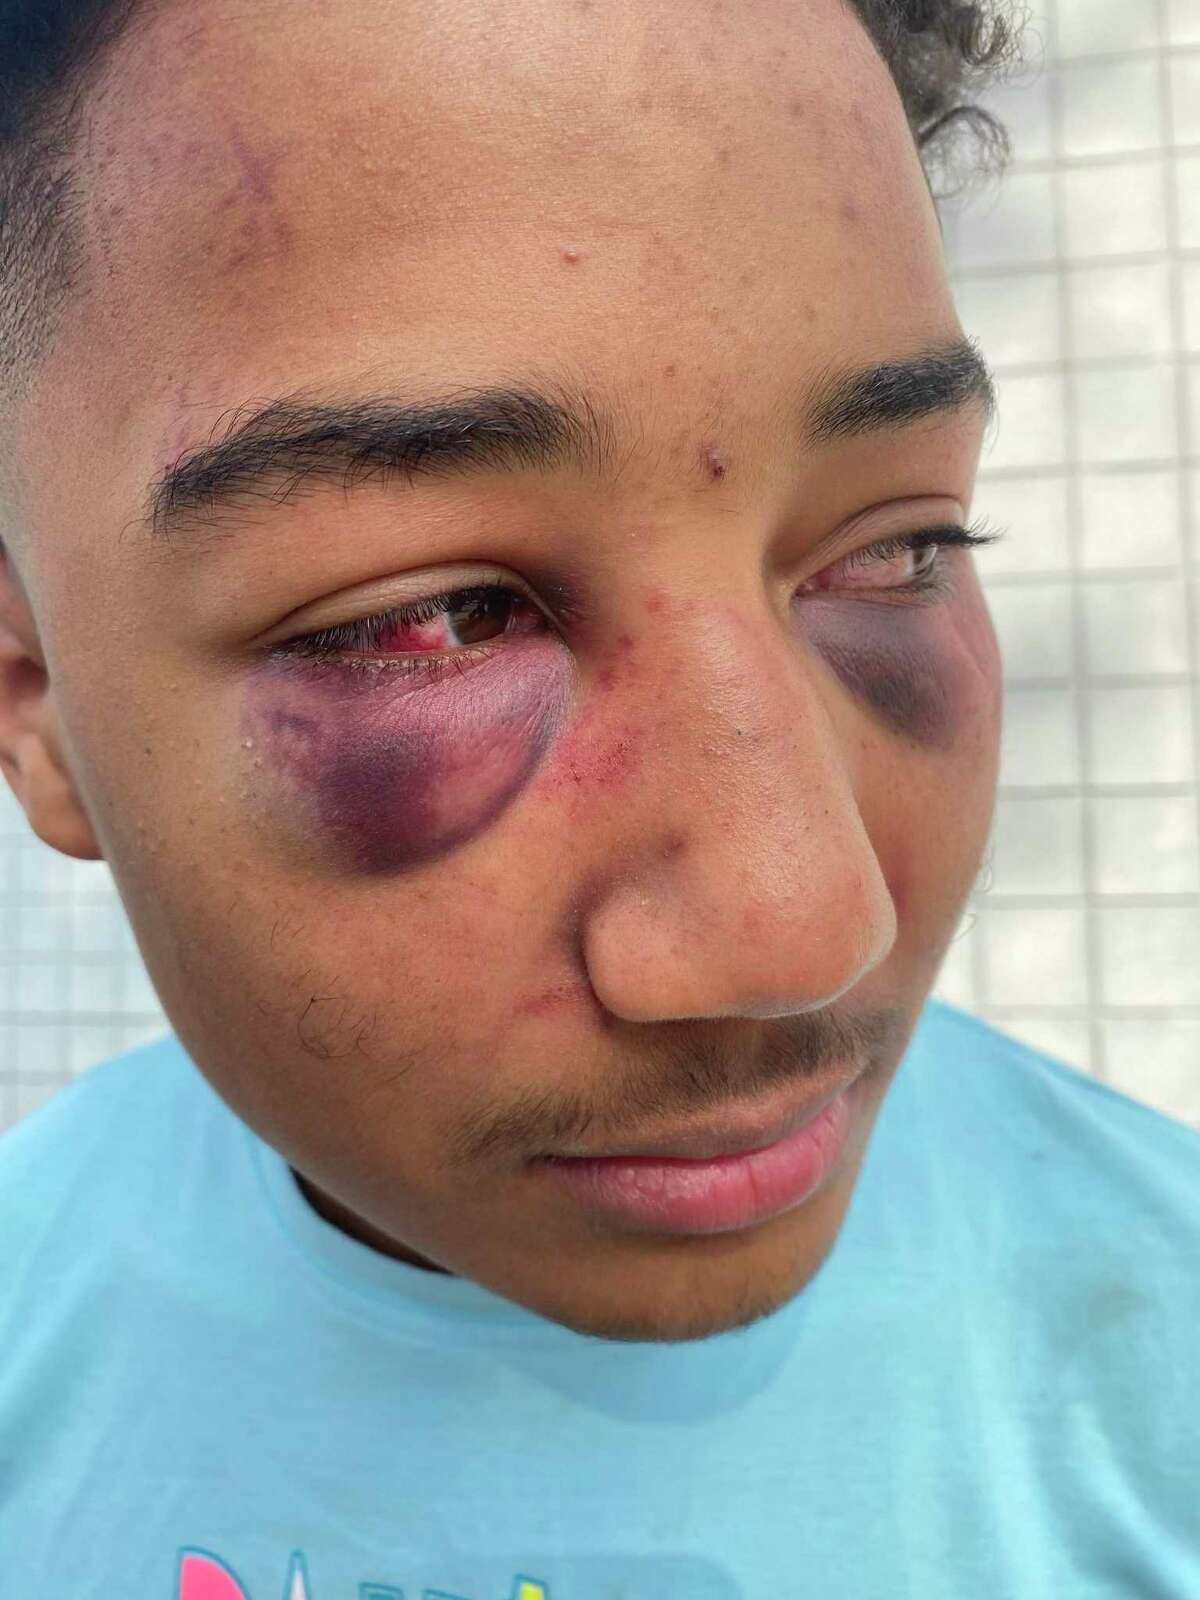 Devin Carter with facial bruises after four Stockton police officers allegedly beat him during a traffic stop.